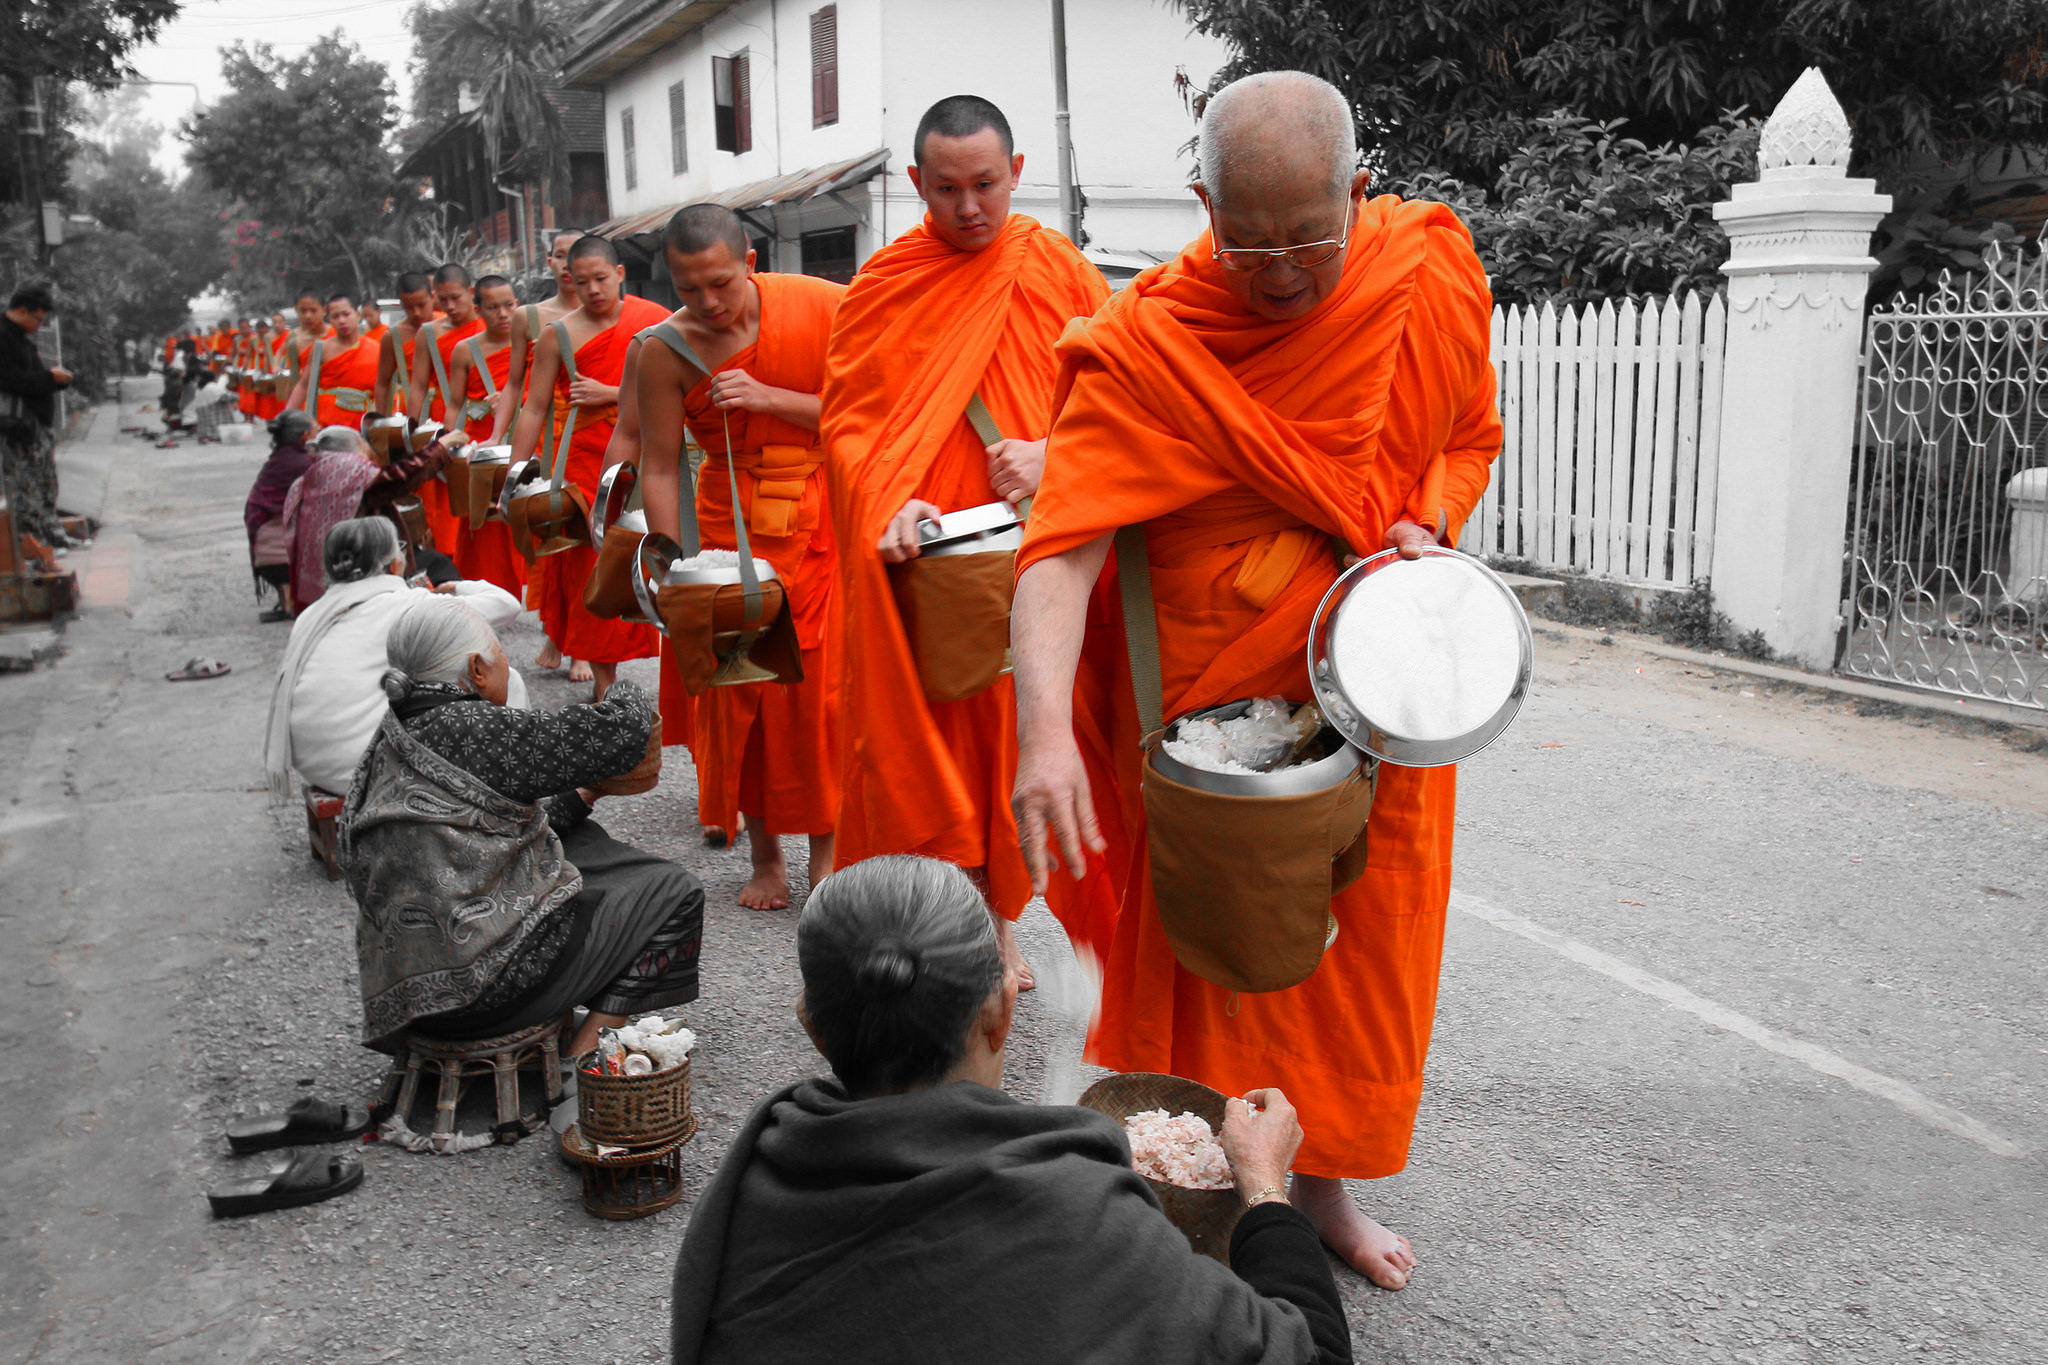 Monks collecting alms in Luang Prabang - Insight To Asia Tours